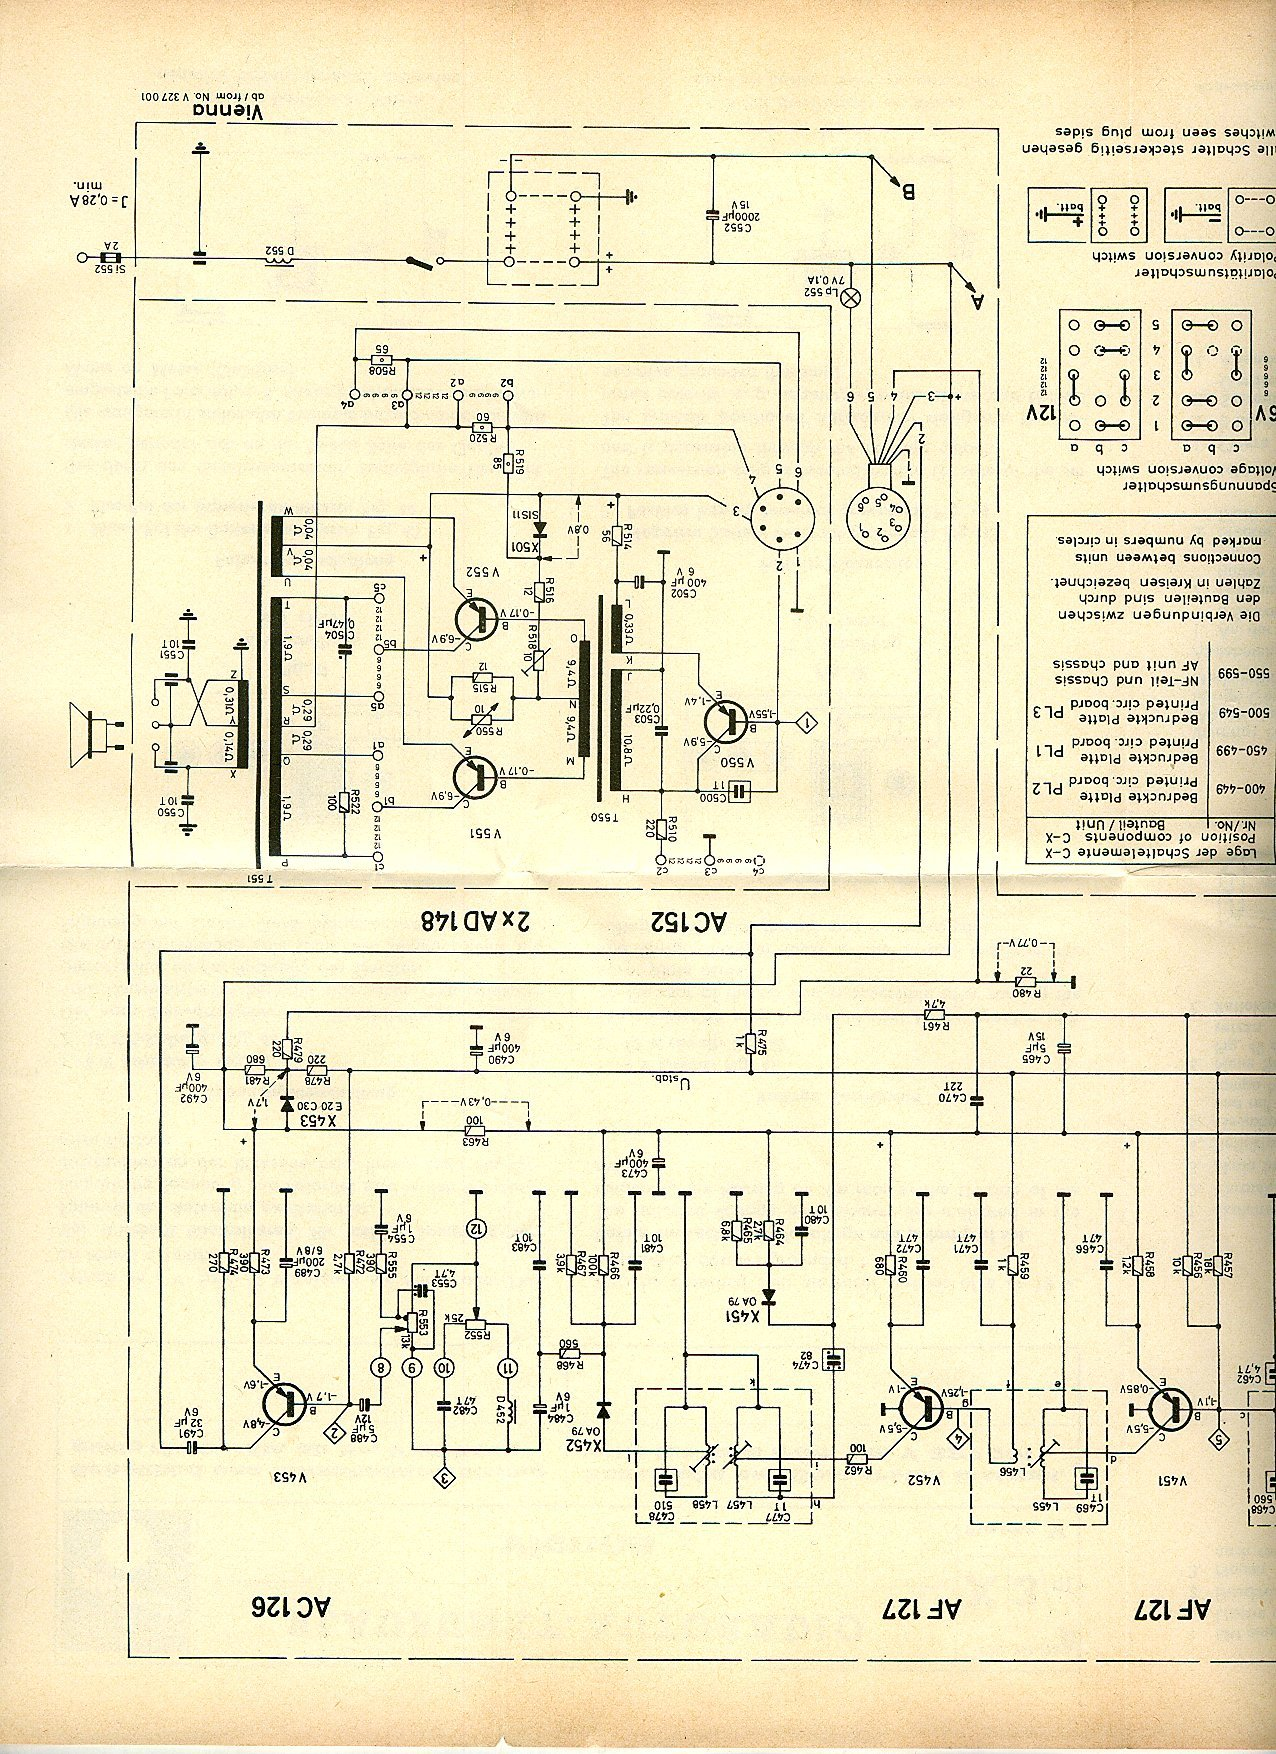 Fig Fig 15 199196 Previa Chassis Schematics